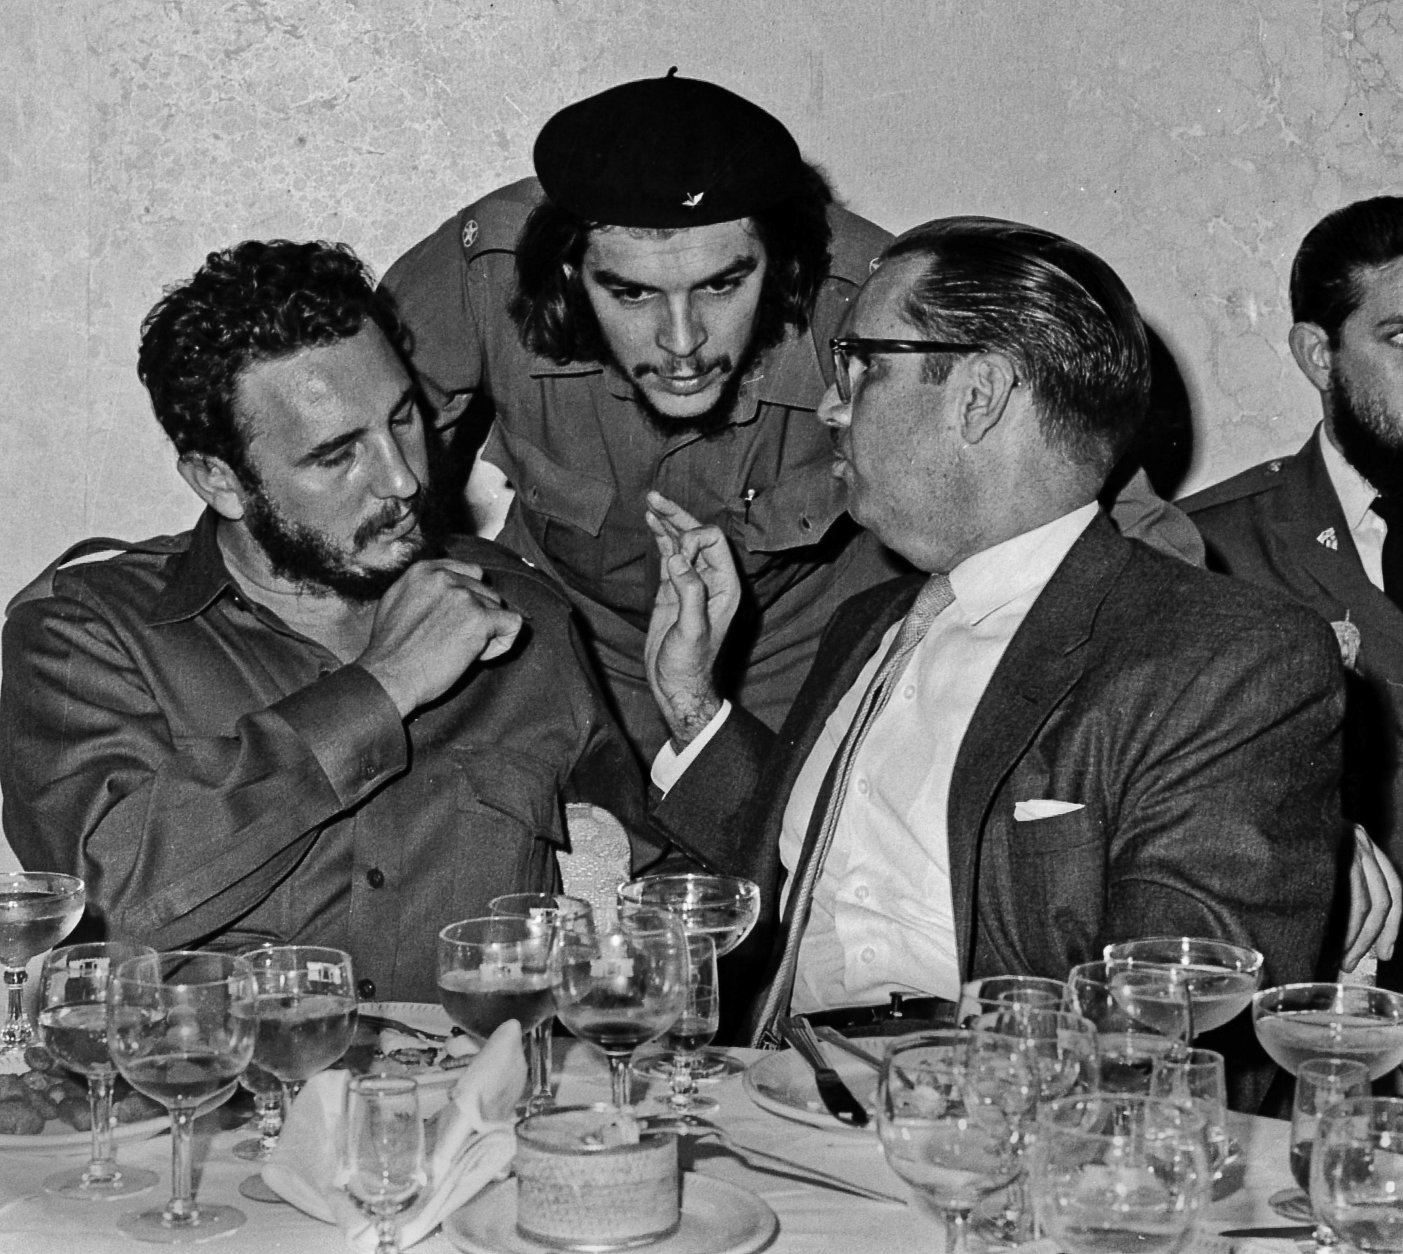 """FILE - In this 1960 file photo, Cuba's revolutionary hero Ernesto """"Che"""" Guevara, center, Cuba's leader Fidel Castro, left, and Cuba's President Osvaldo Dorticos, right, attend a reception in an unknown location in Cuba. Former President Fidel Castro, who led a rebel army to improbable victory in Cuba, embraced Soviet-style communism and defied the power of 10 U.S. presidents during his half century rule, has died at age 90. The bearded revolutionary, who survived a crippling U.S. trade embargo as well as dozens, possibly hundreds, of assassination plots, died eight years after ill health forced him to formally hand power over to his younger brother Raul, who announced his death late Friday, Nov. 25, 2016, on state television. (Prensa Latina via AP Images, File)"""